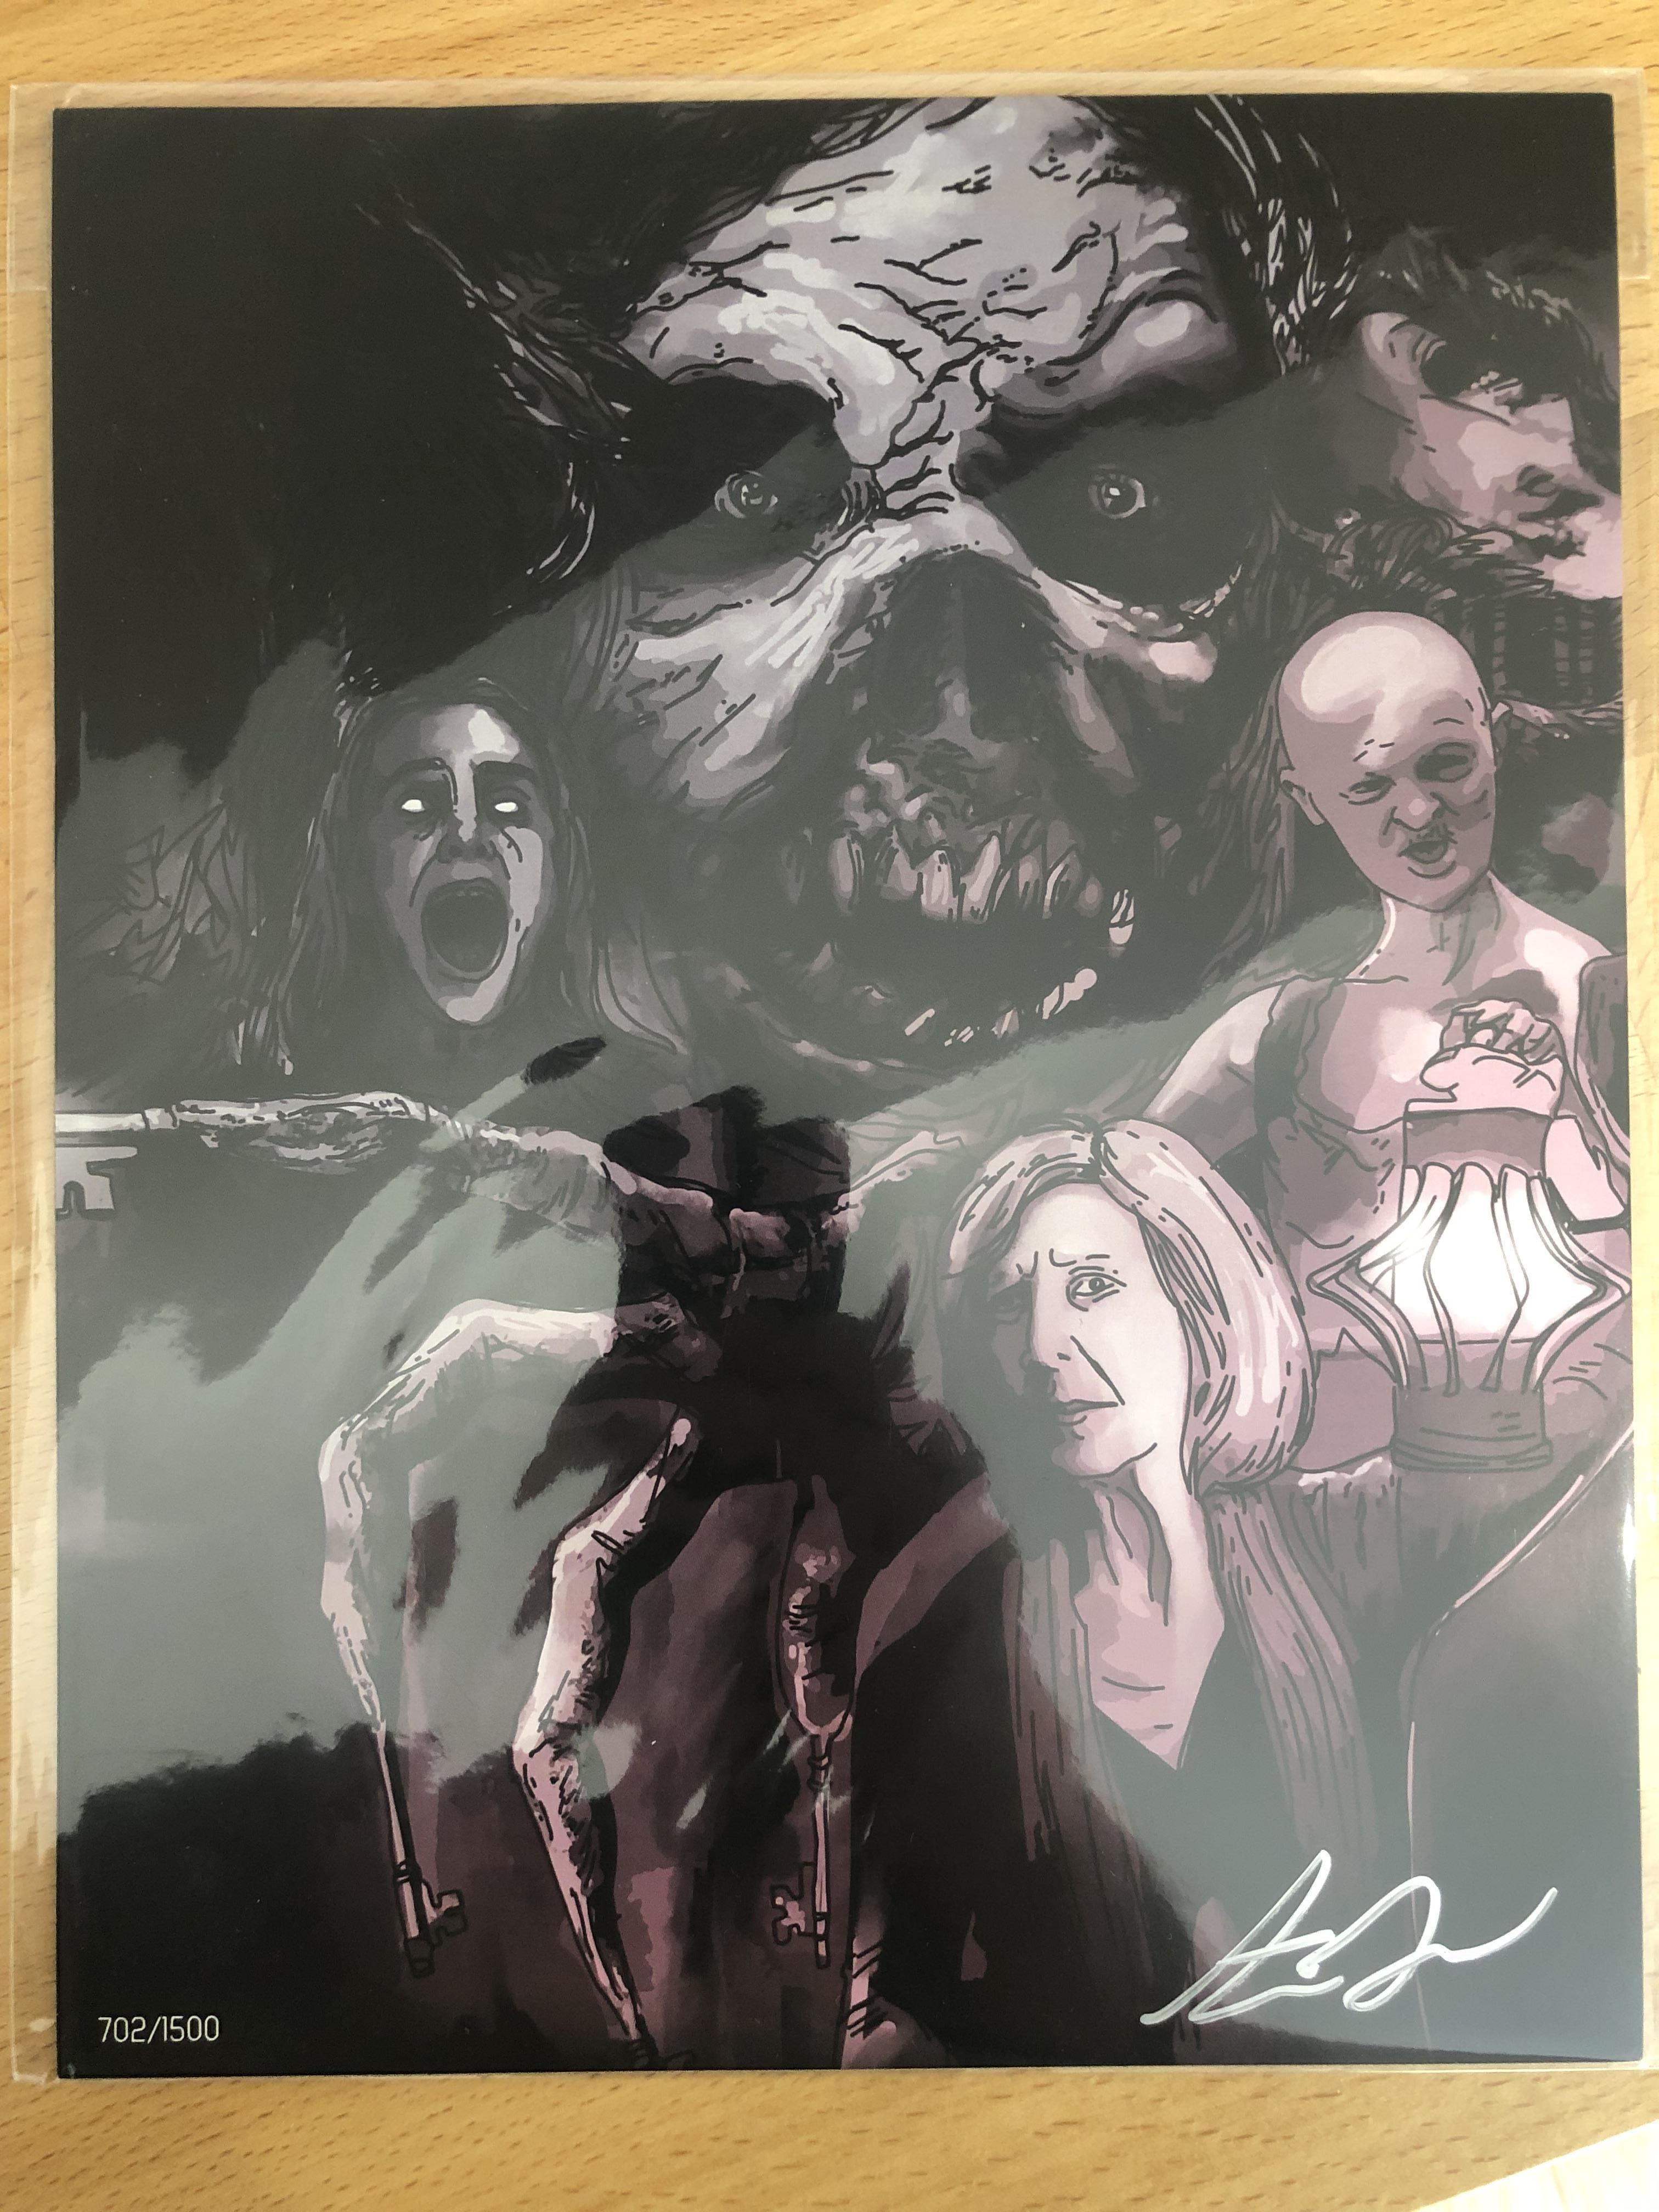 Lot 44 - 6 x The Bam Box Limited Edition Prints Signed.